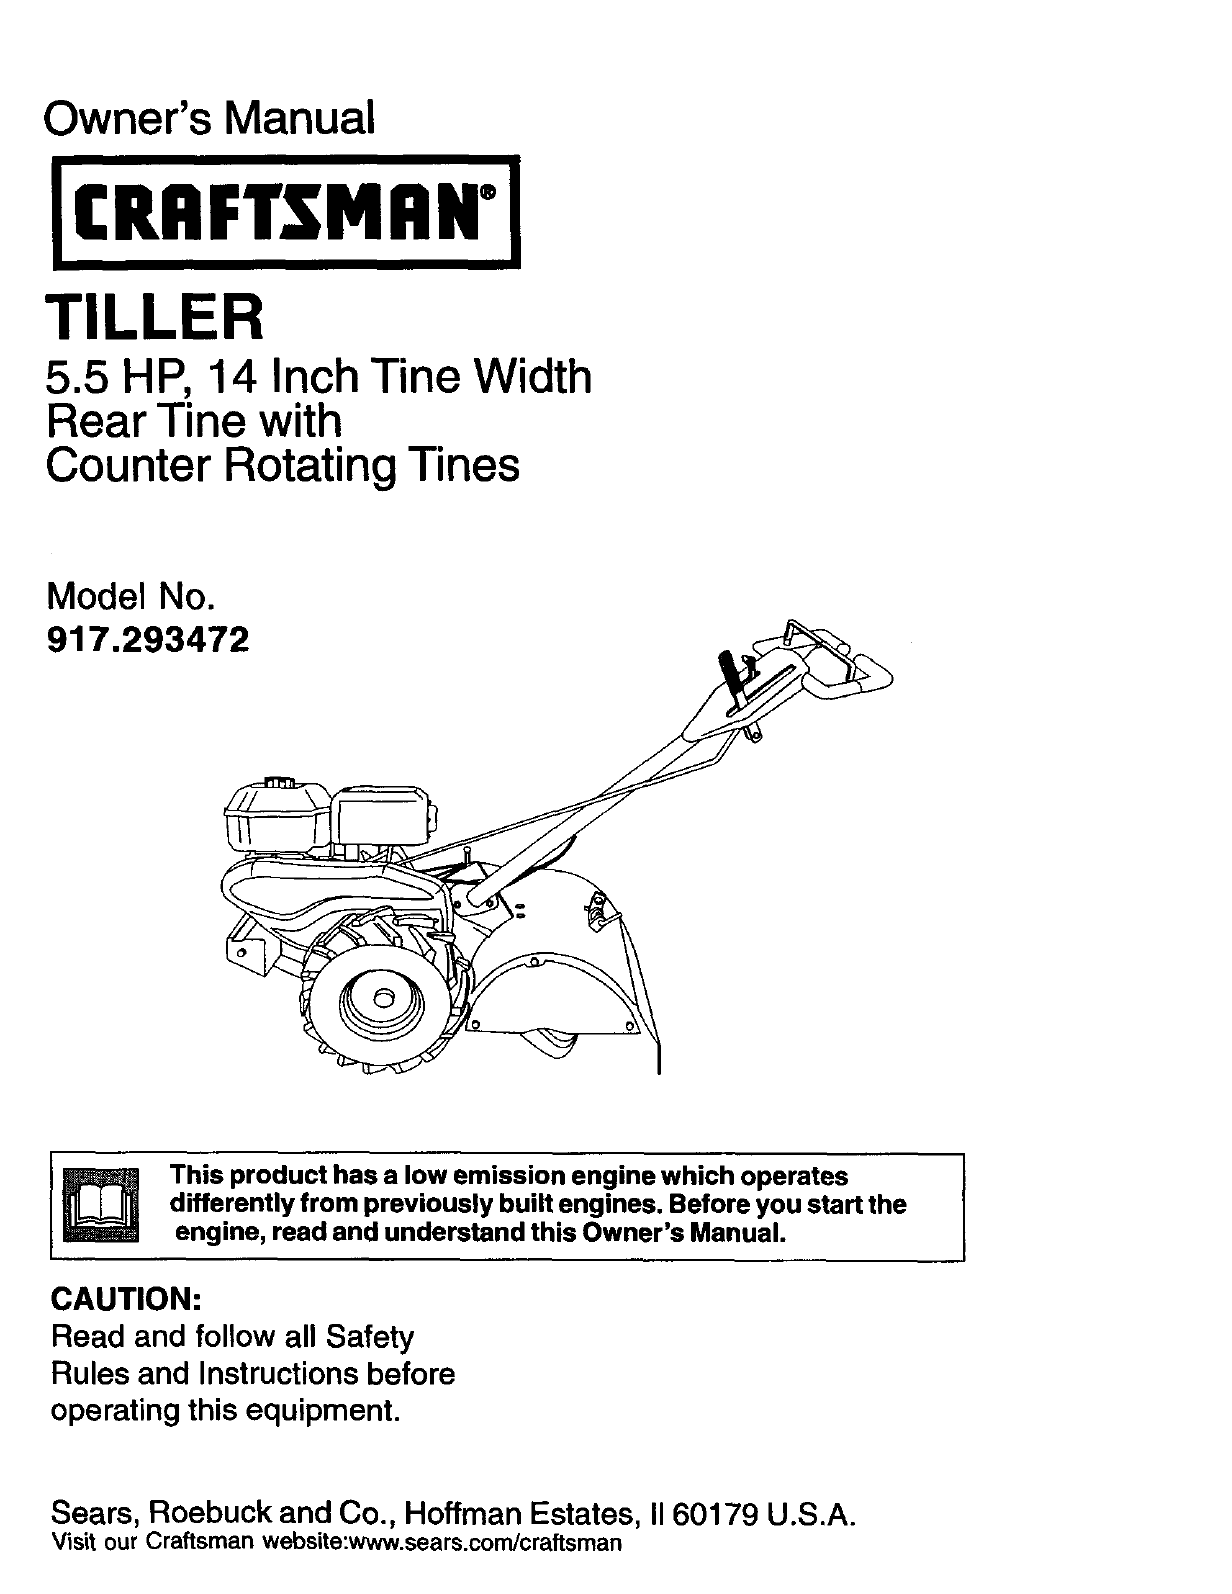 Craftsman 917293472 User Manual Rear Tine Tiller Manuals And Guides Engine Diagram L0203192